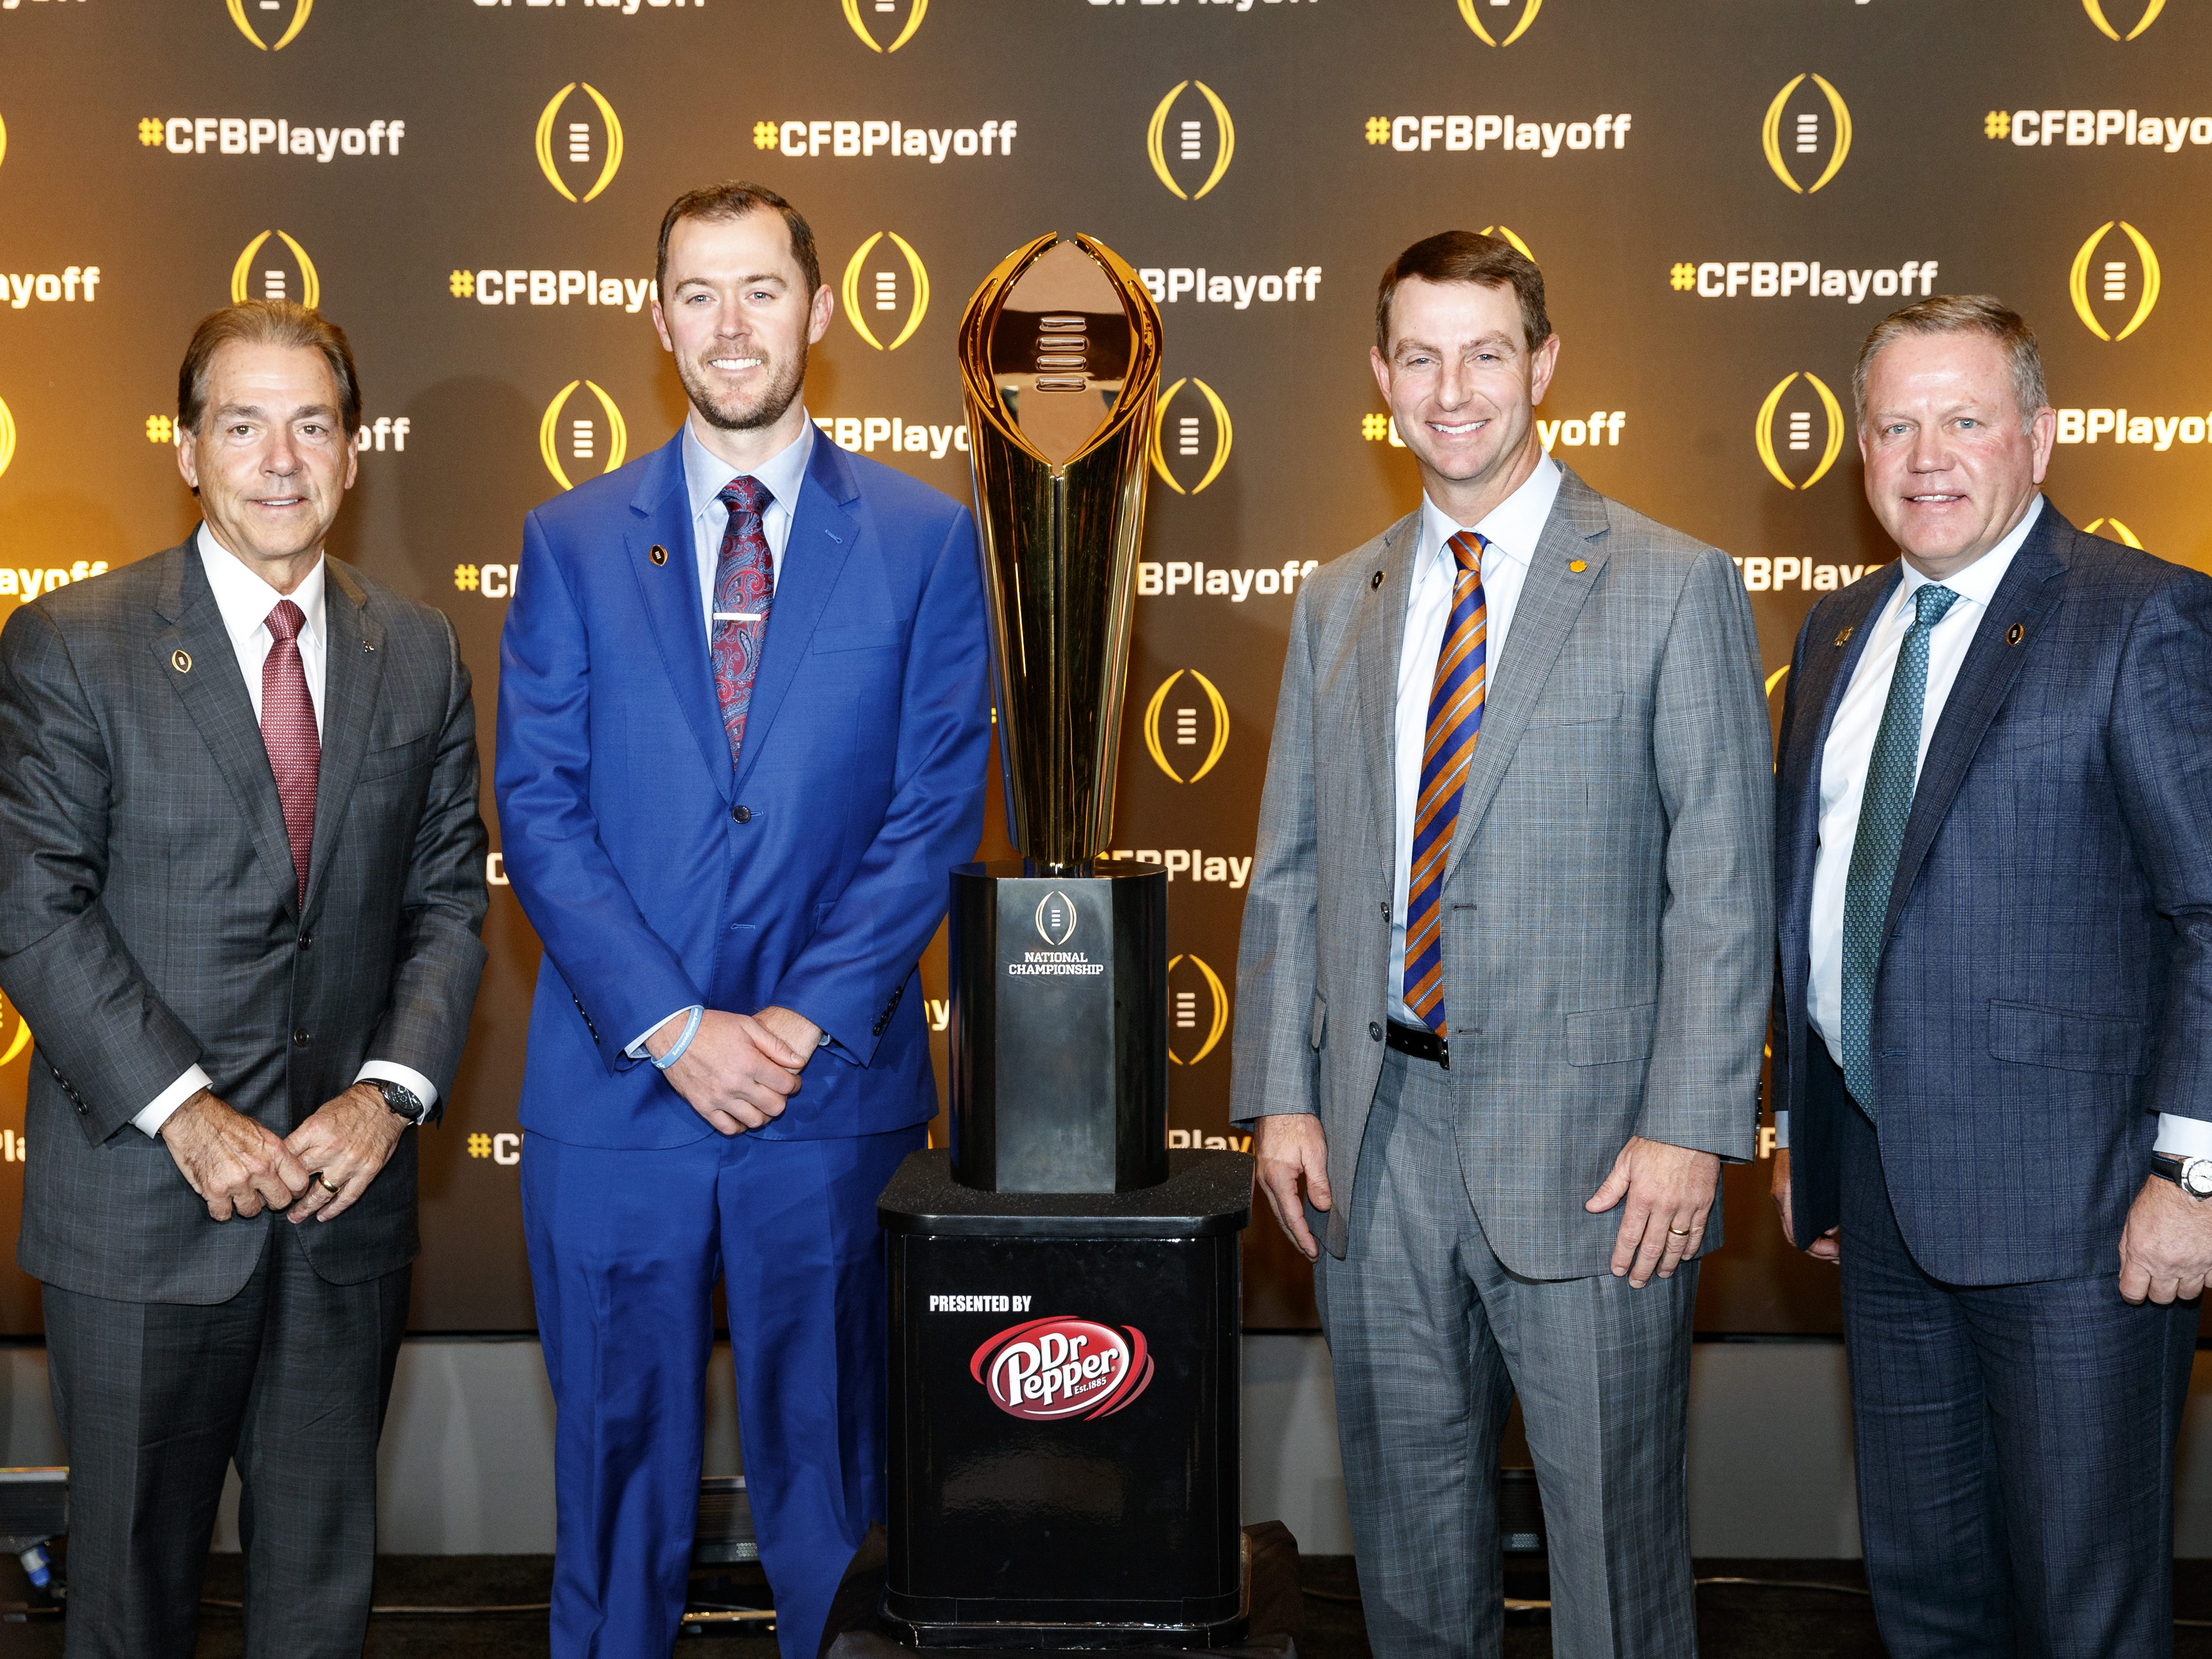 Alabama coach Nick Saban, Oklahoma coach Lincoln Riley, Clemson coach Dabo Swinney and Notre Dame coach Brian Kelly pose with the National Championship Trophy at the College Football Playoff Semifinal Head Coaches News Conference in Atlanta.